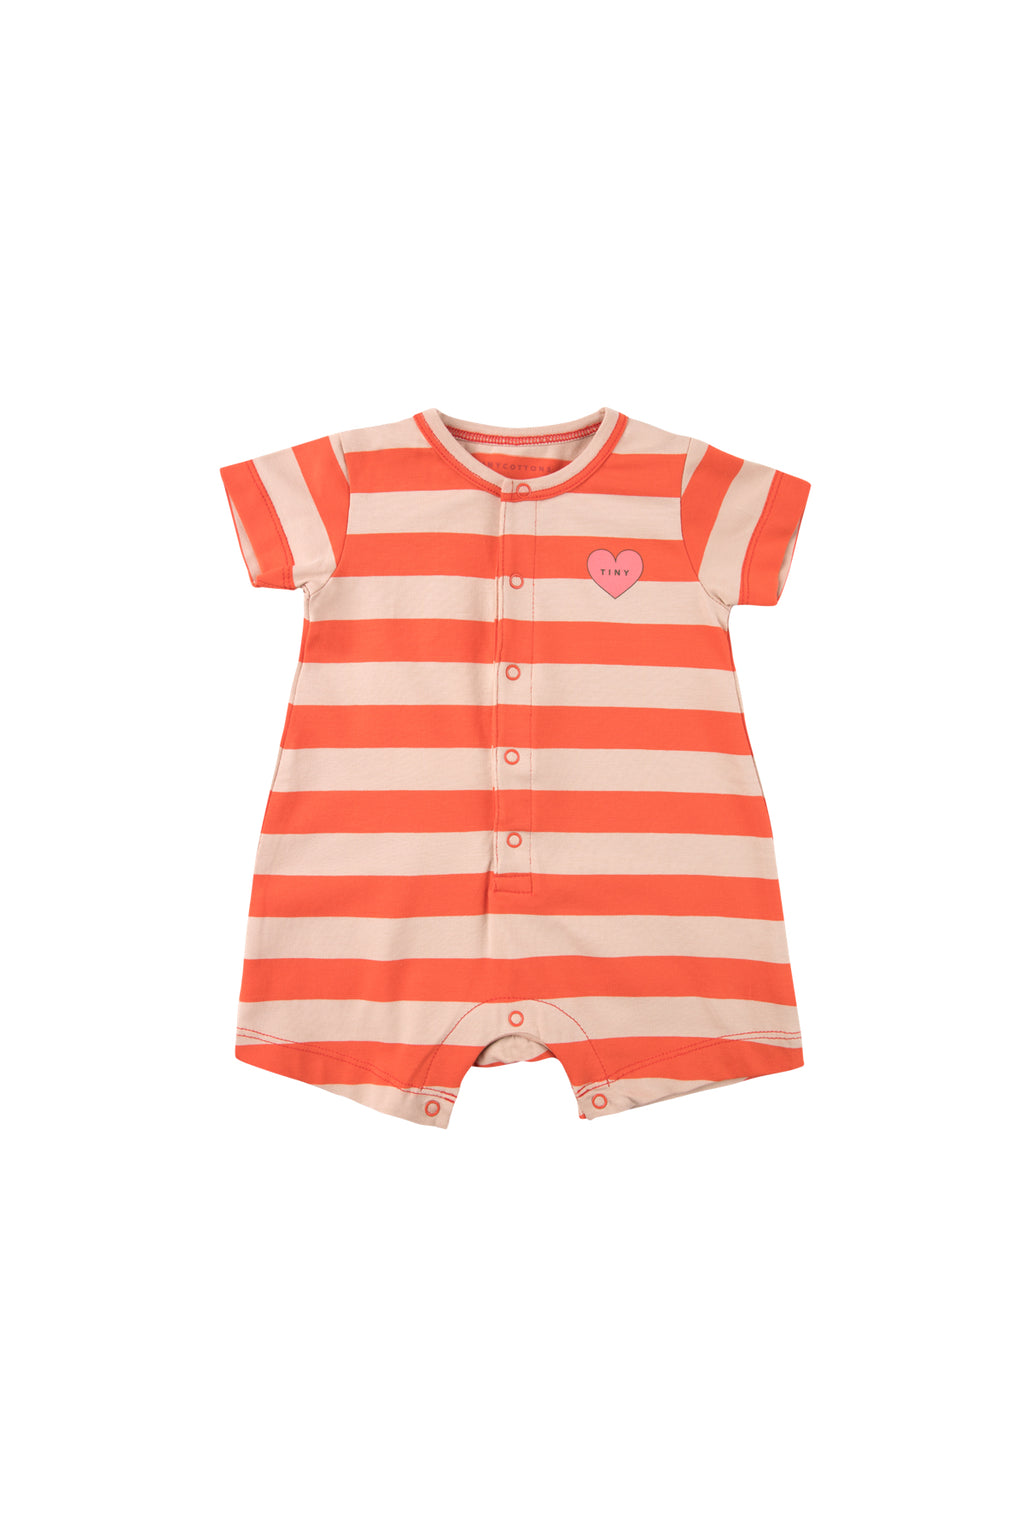 Tiny Cottons Hearts Stripes One Piece